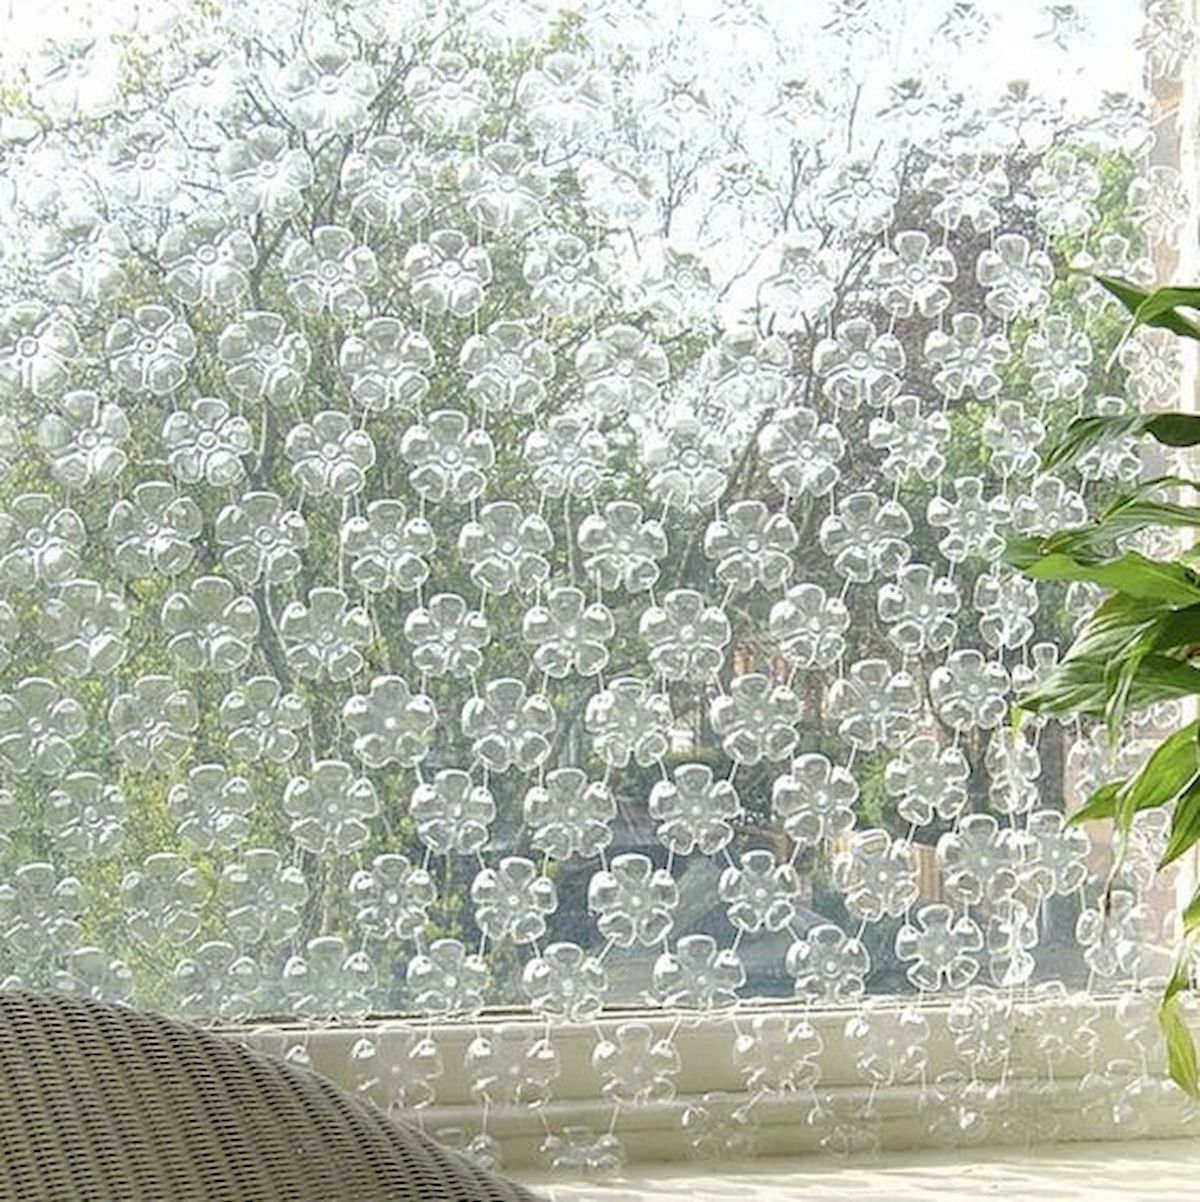 30 Amazing DIY Decorating Ideas With Recycled Plastic Bottles (15)